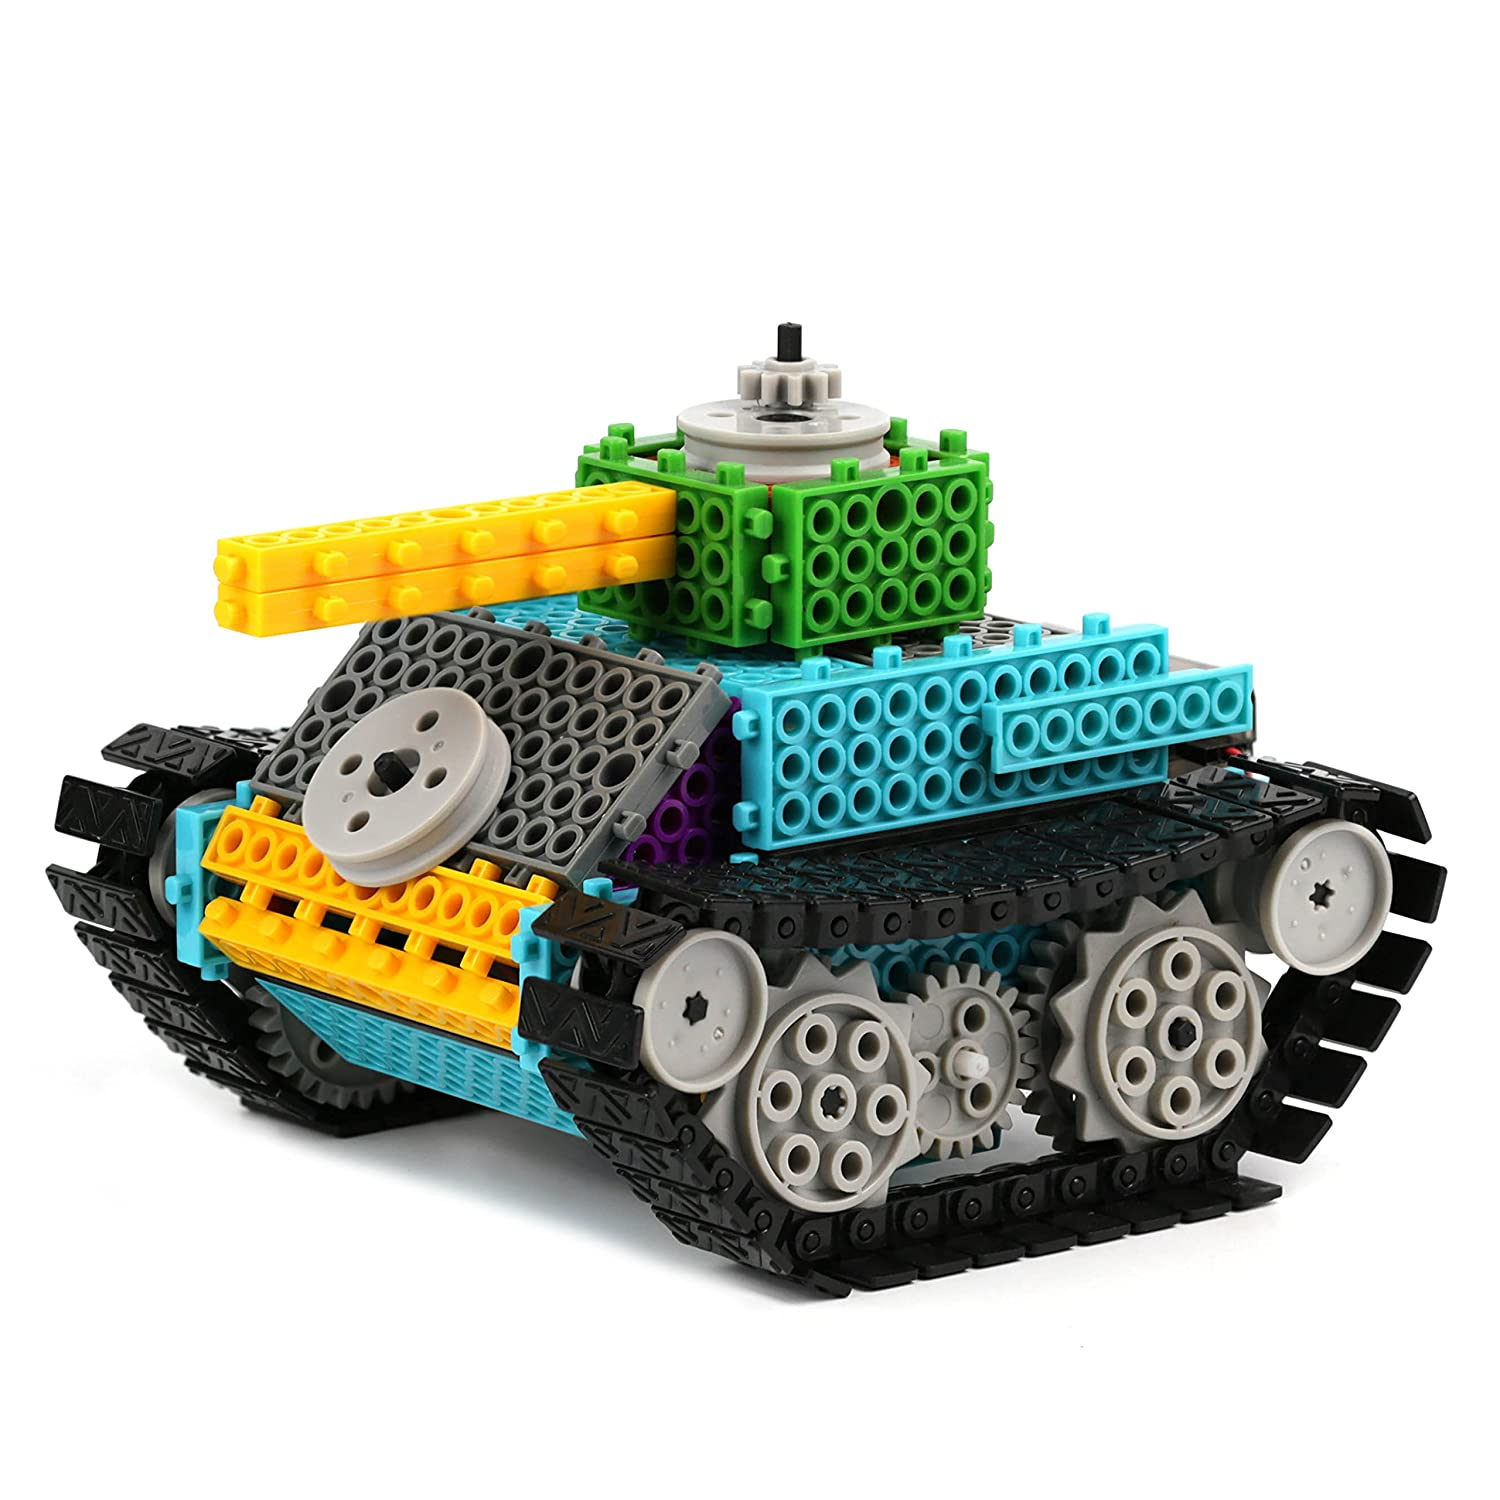 image of RC tank built with building kits in various colors